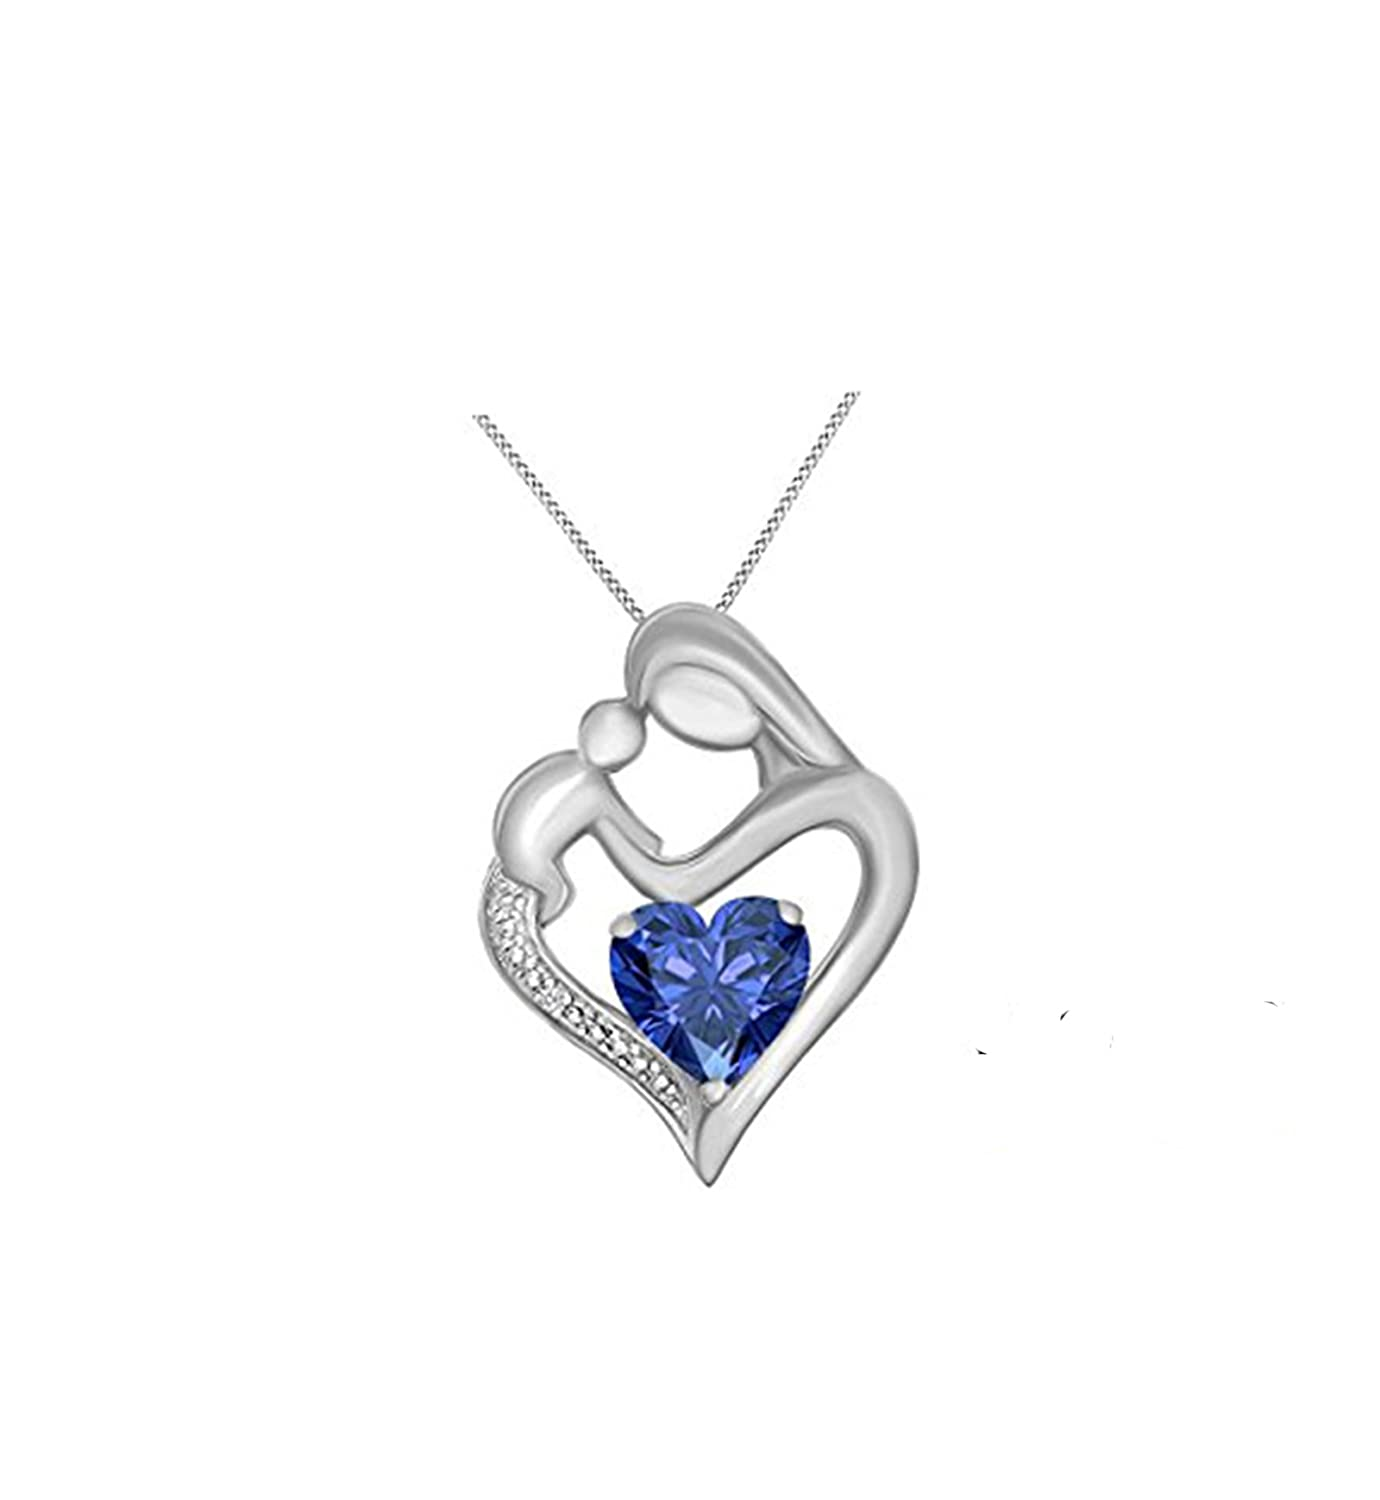 Suhana Jewellery Simulated Diamond Studded Elegant Fashion Charm Heart MOM Pendant Necklace in 14K White Gold Plated With Box Chain